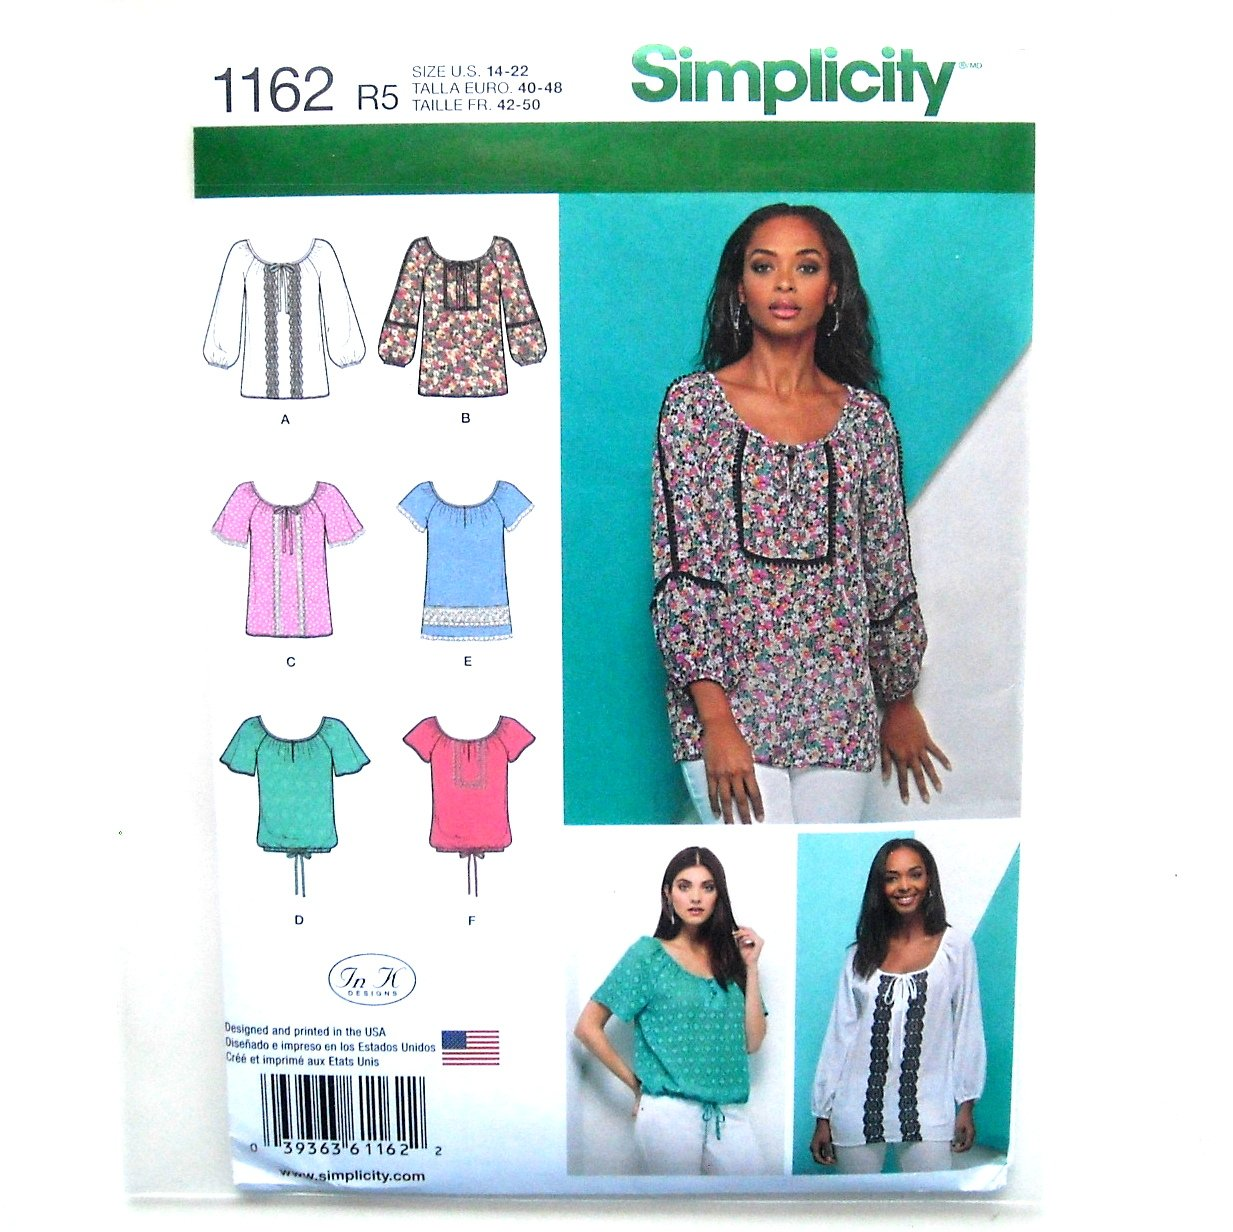 Misses Blouses Tops 14 - 22 In K Designs Simplicity Sewing Pattern 1162